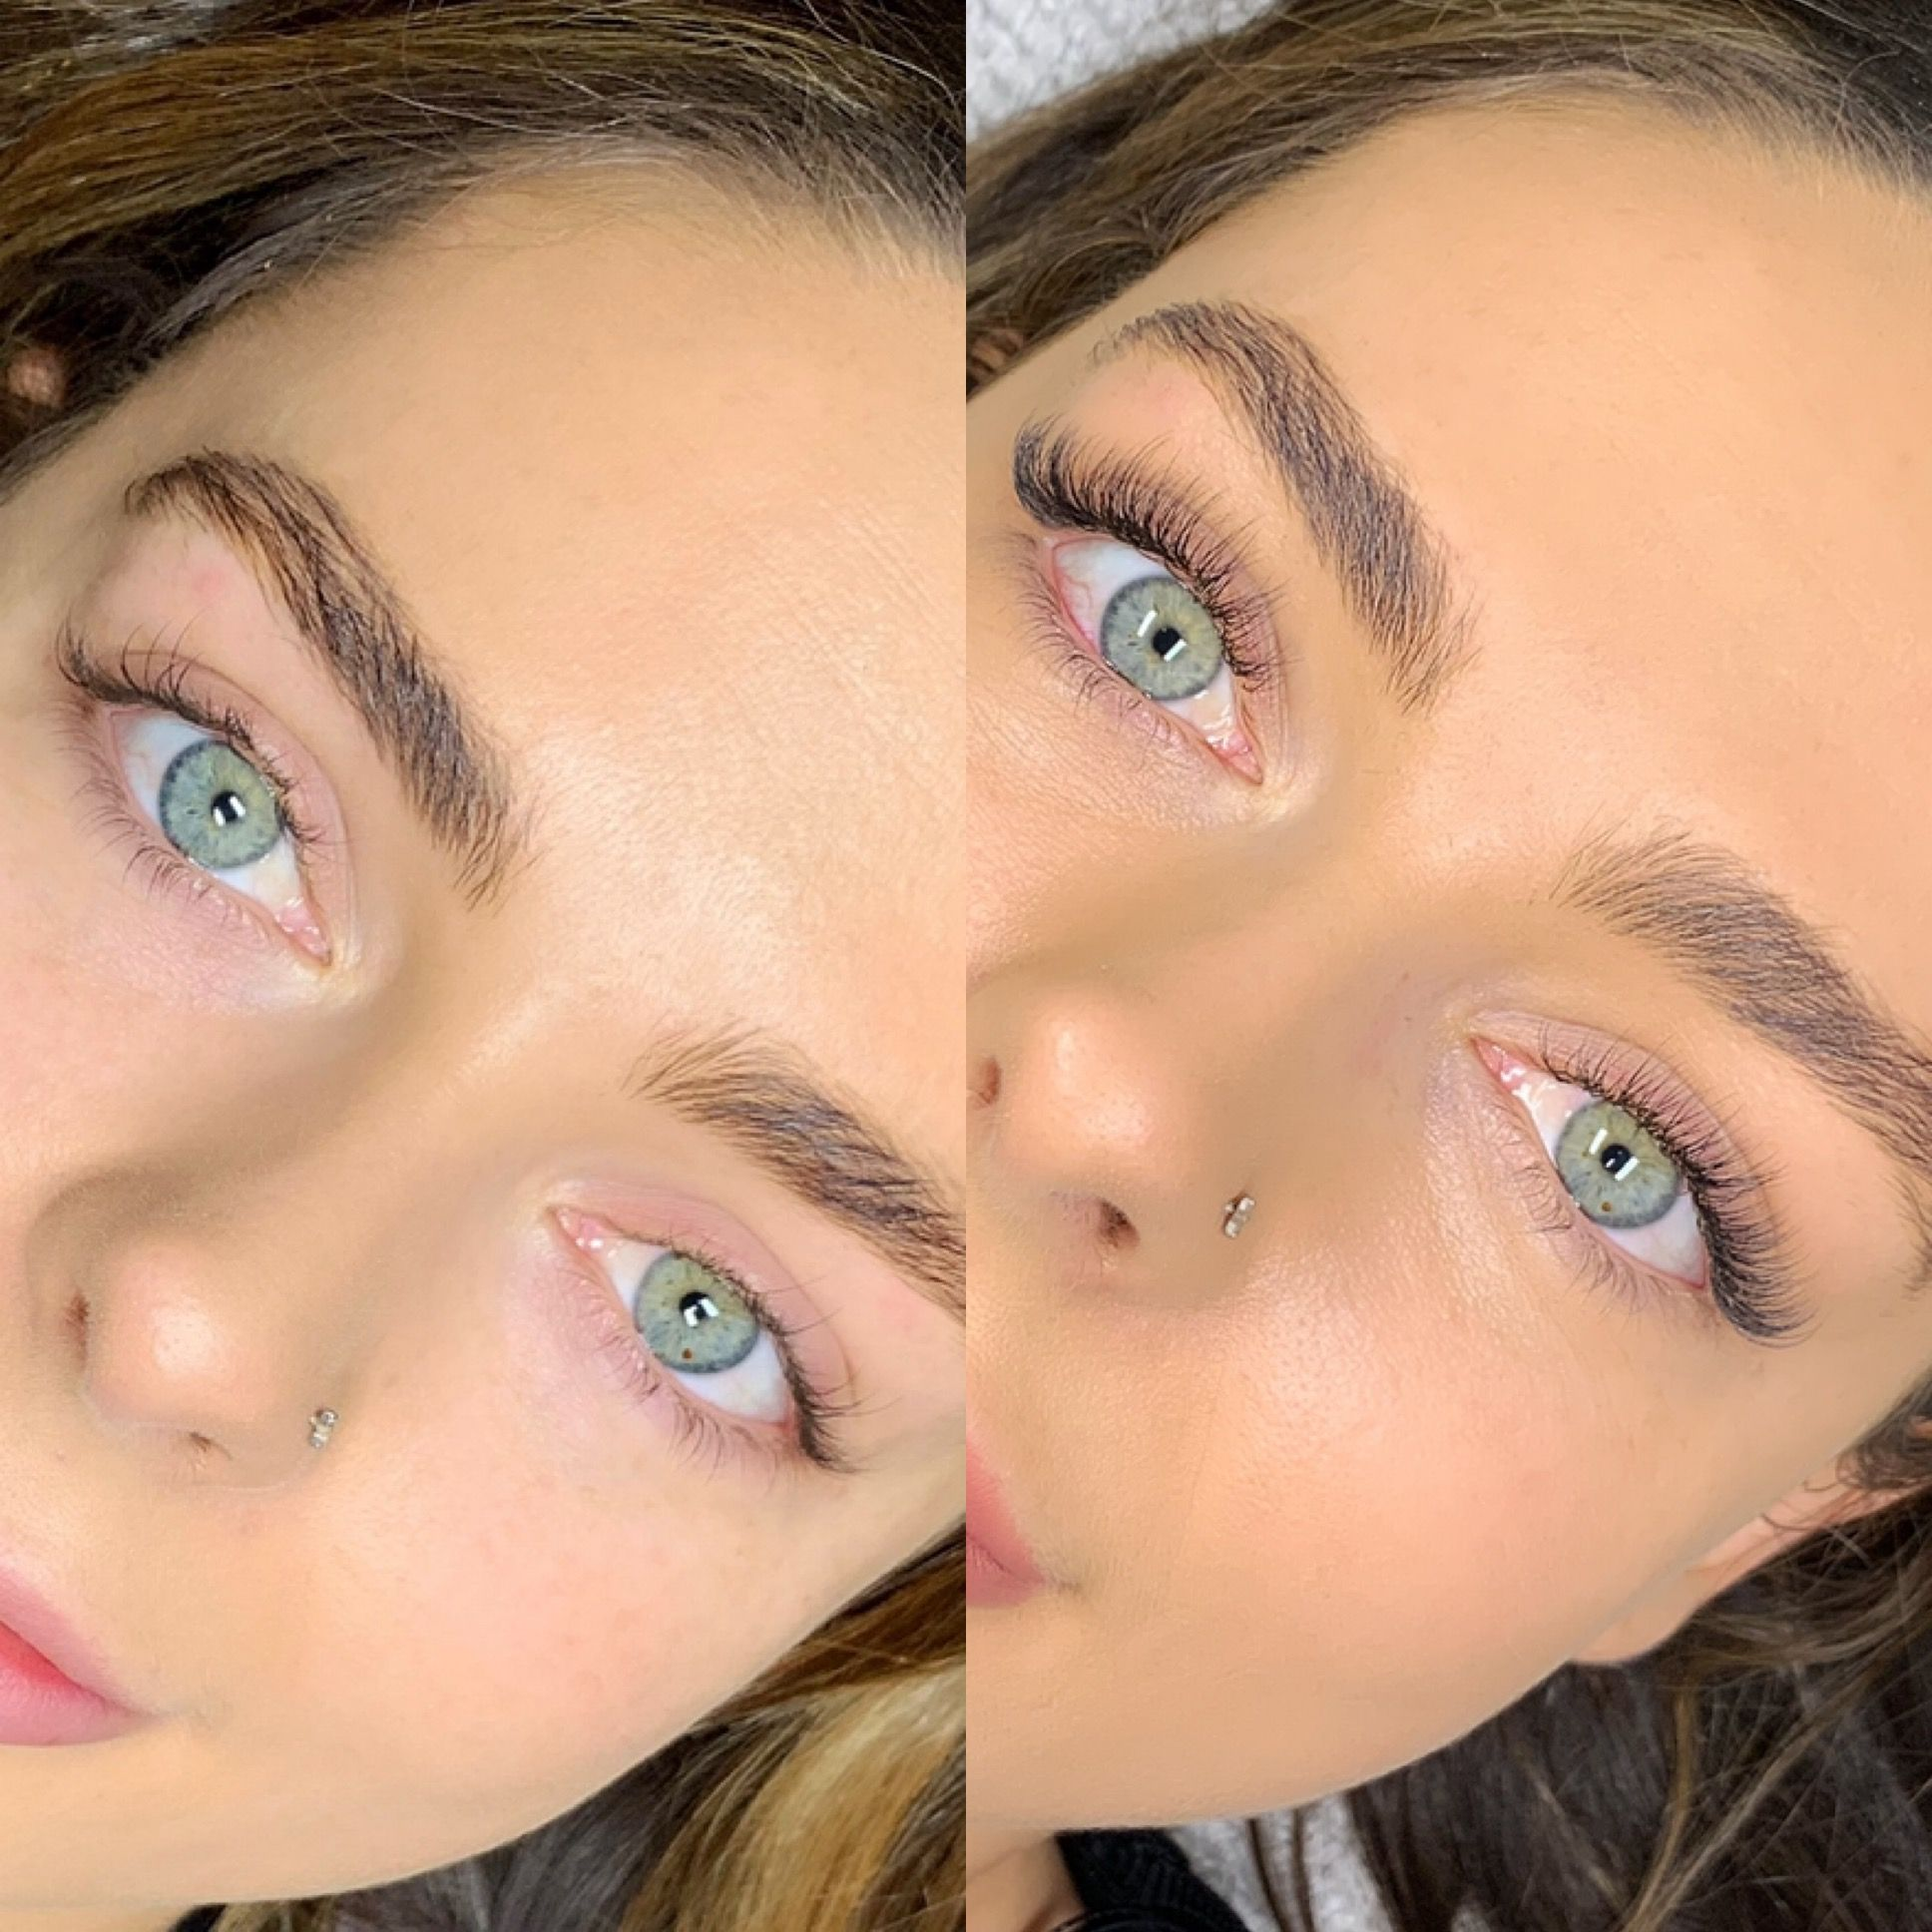 What it's really like to get lash extensions - The truth ...